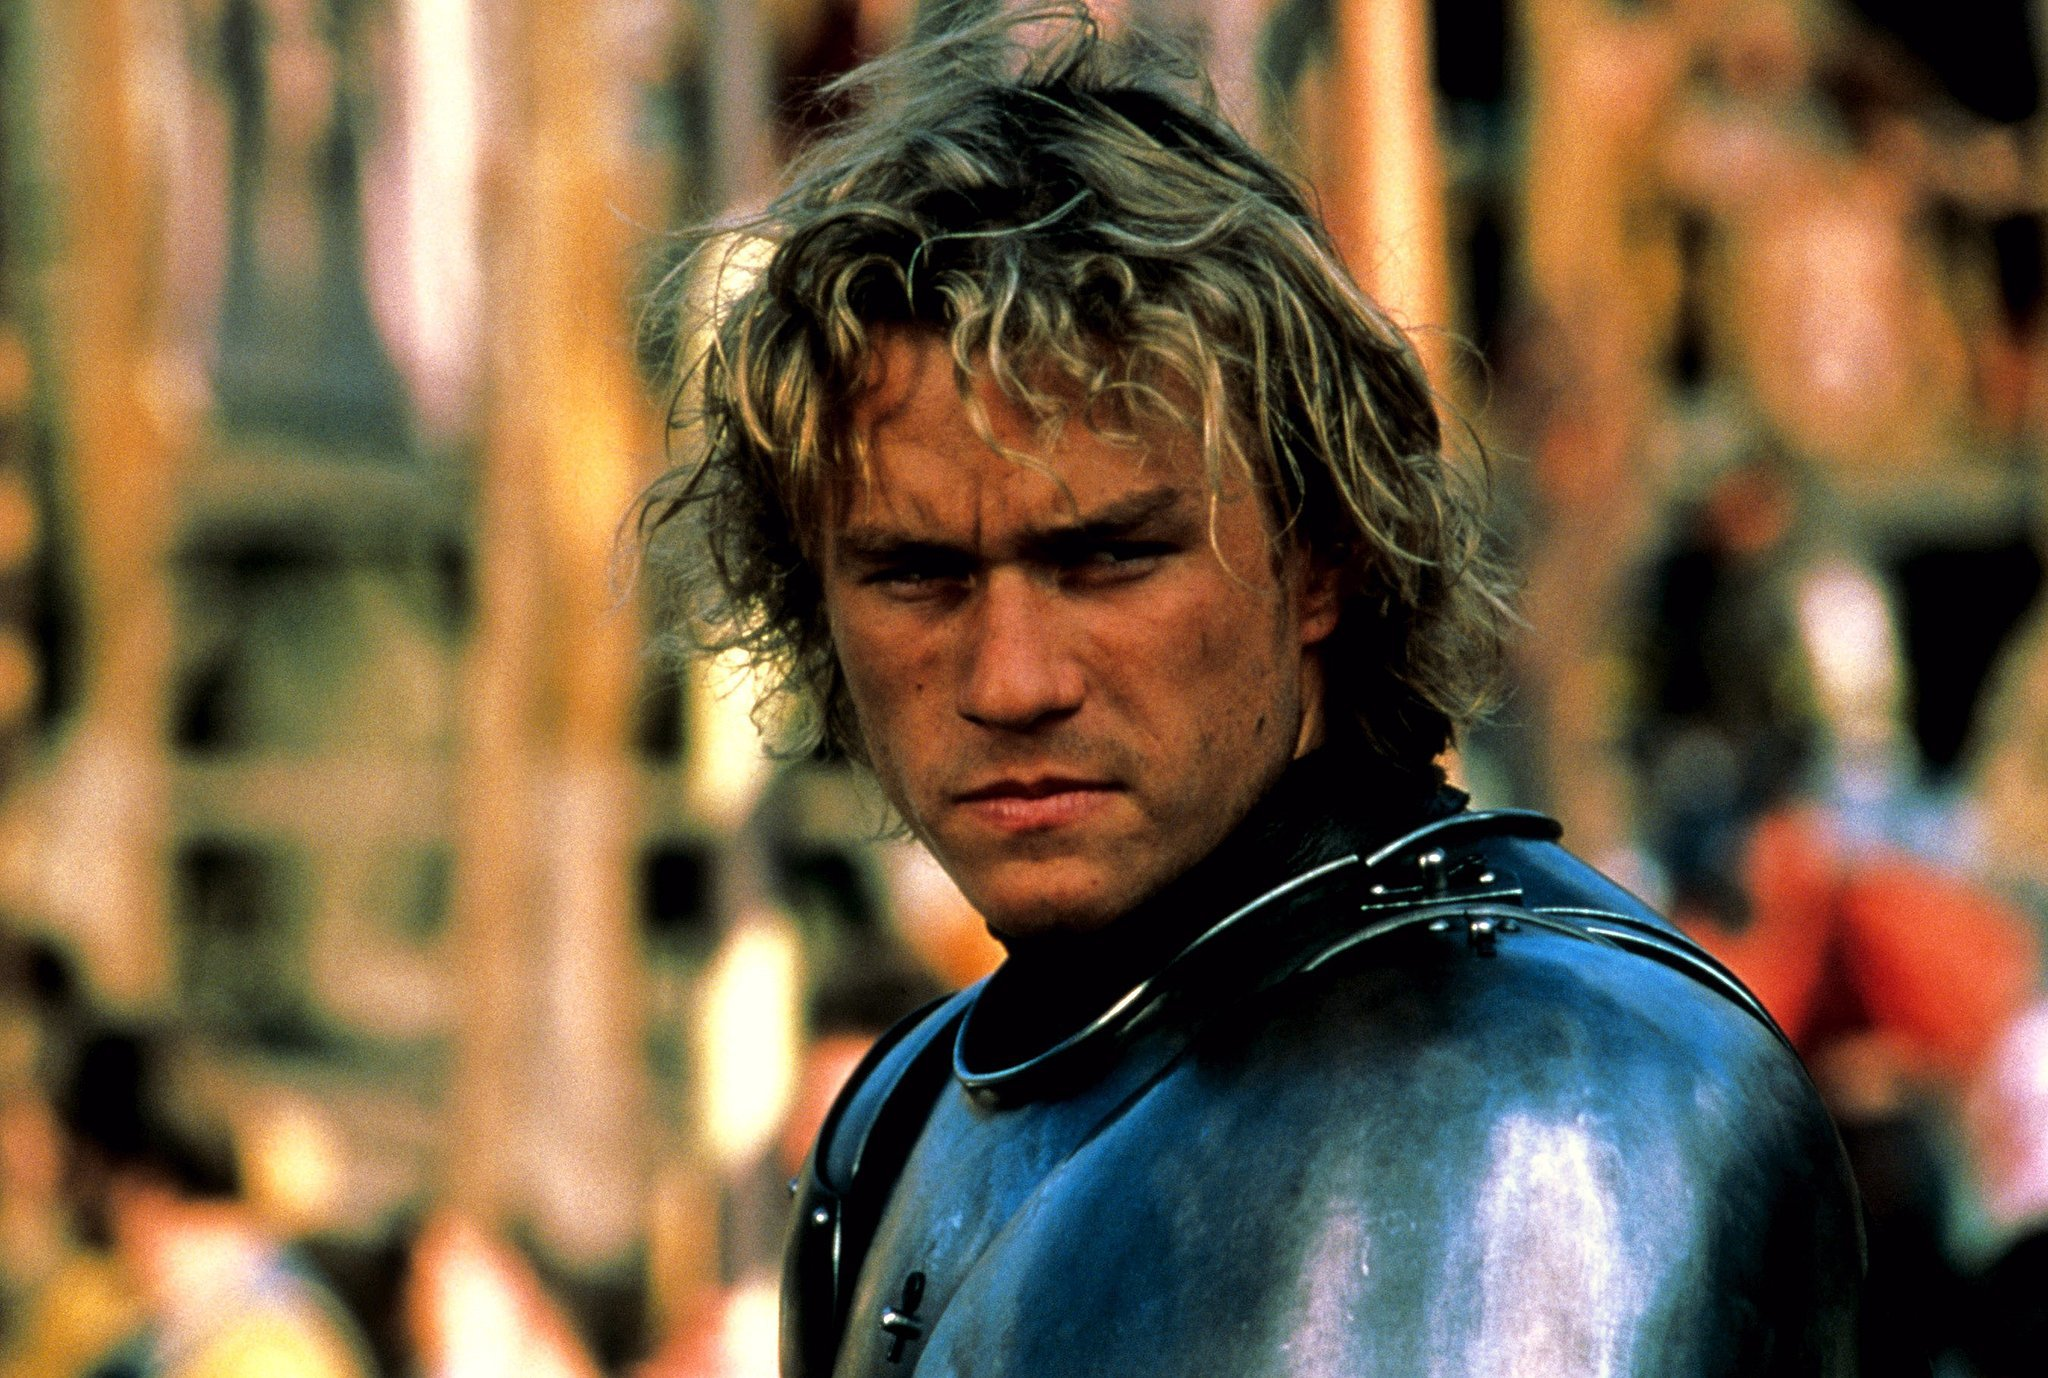 Suited up as William Thatcher in A Knight's Tale.